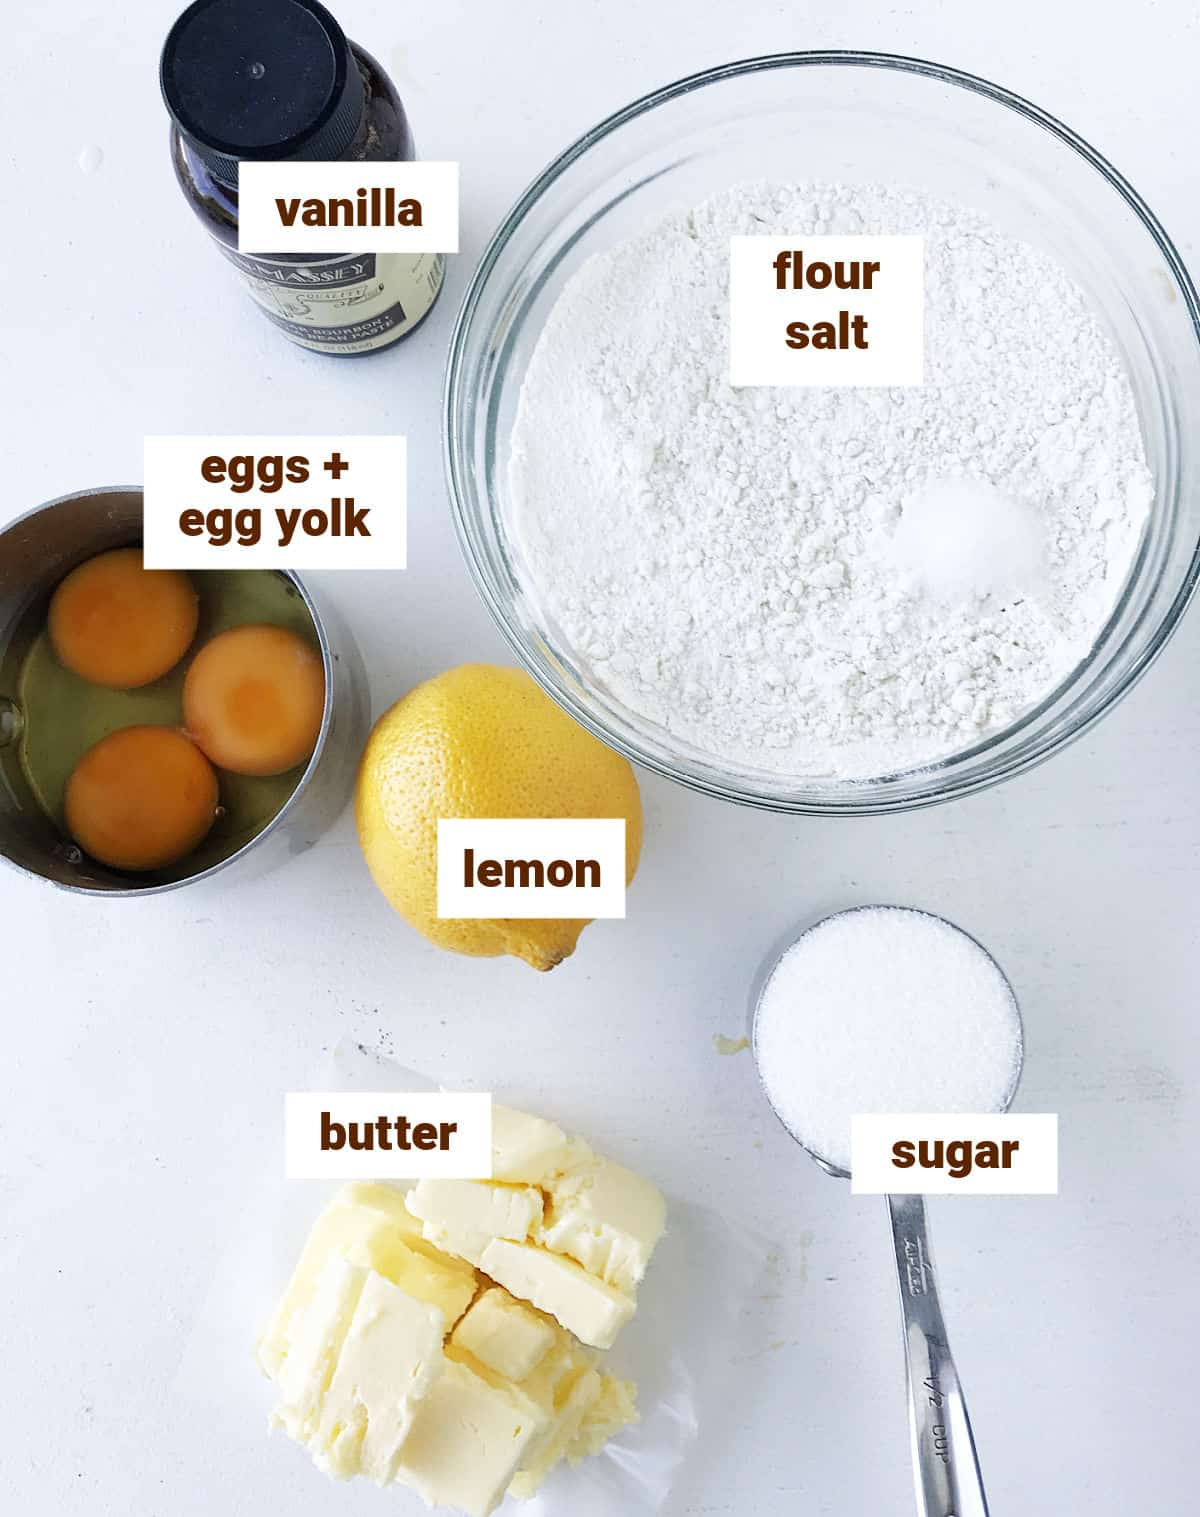 White surface with bowls for pandoro ingredients including lemon, vanilla and eggs